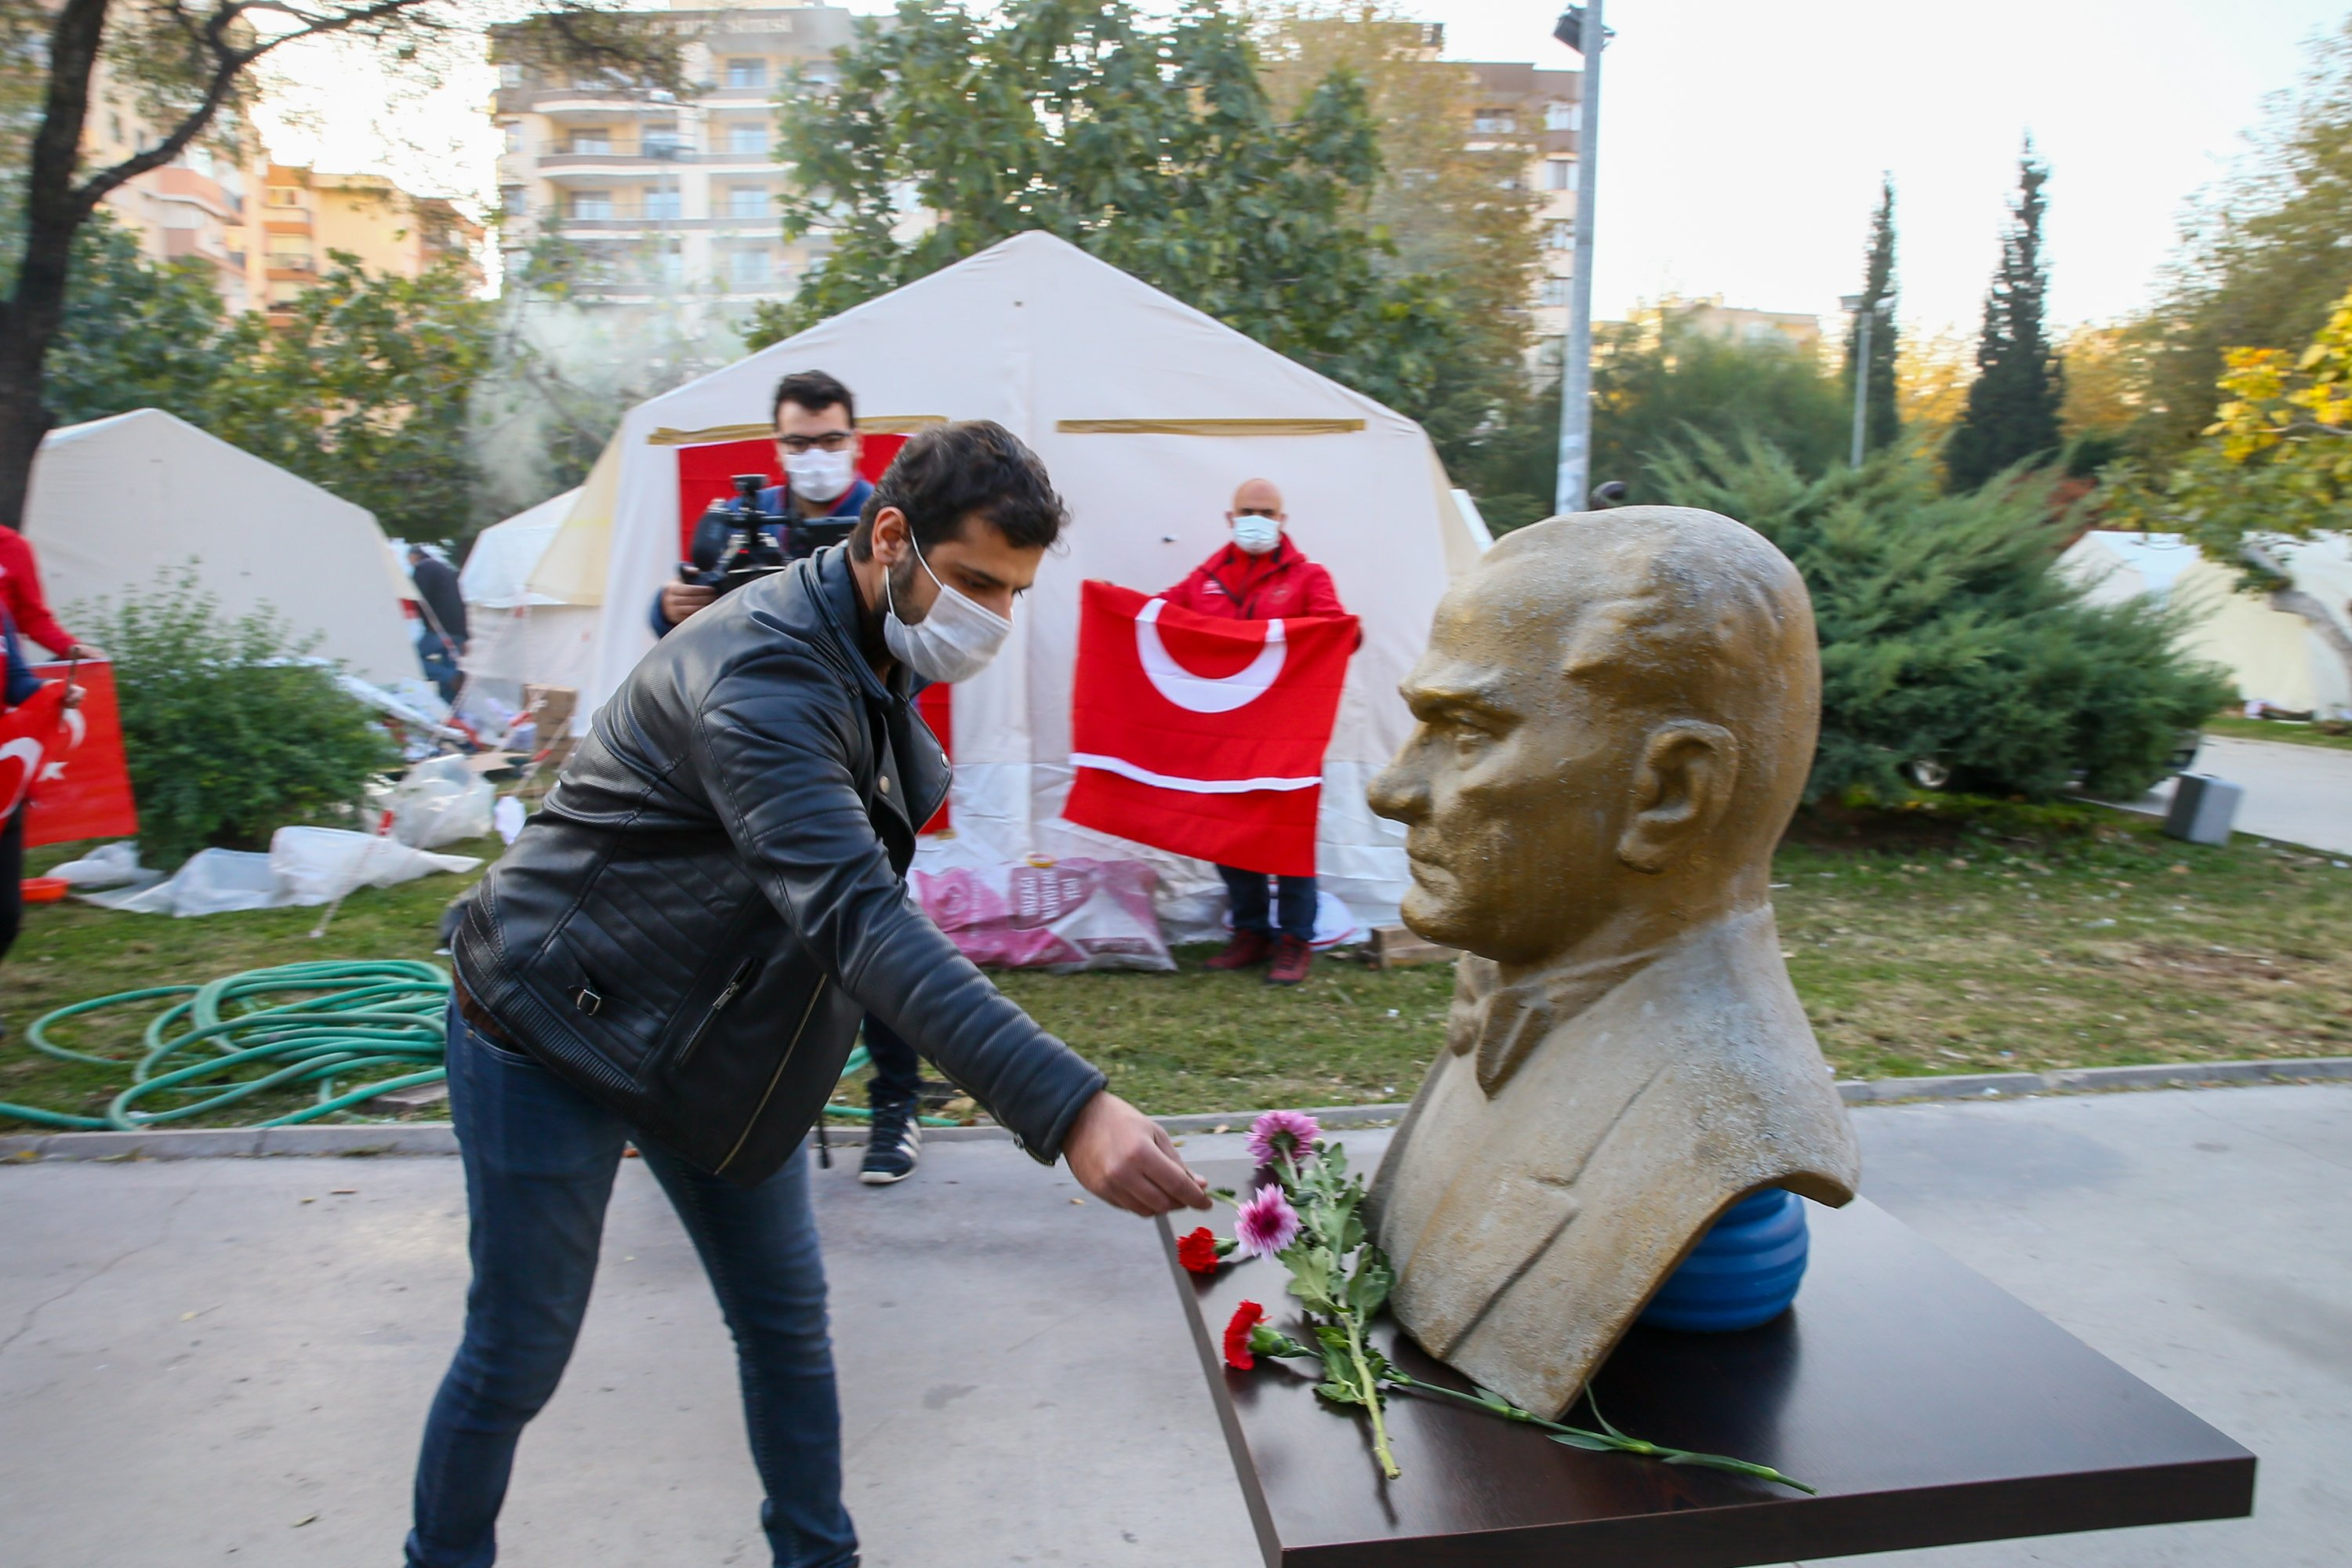 A man leaves flowers at a bust of Mustafa Kemal Atatürk next to tents set up for earthquake survivors in Izmir, western Turkey, Nov. 10, 2020. (AA Photo)